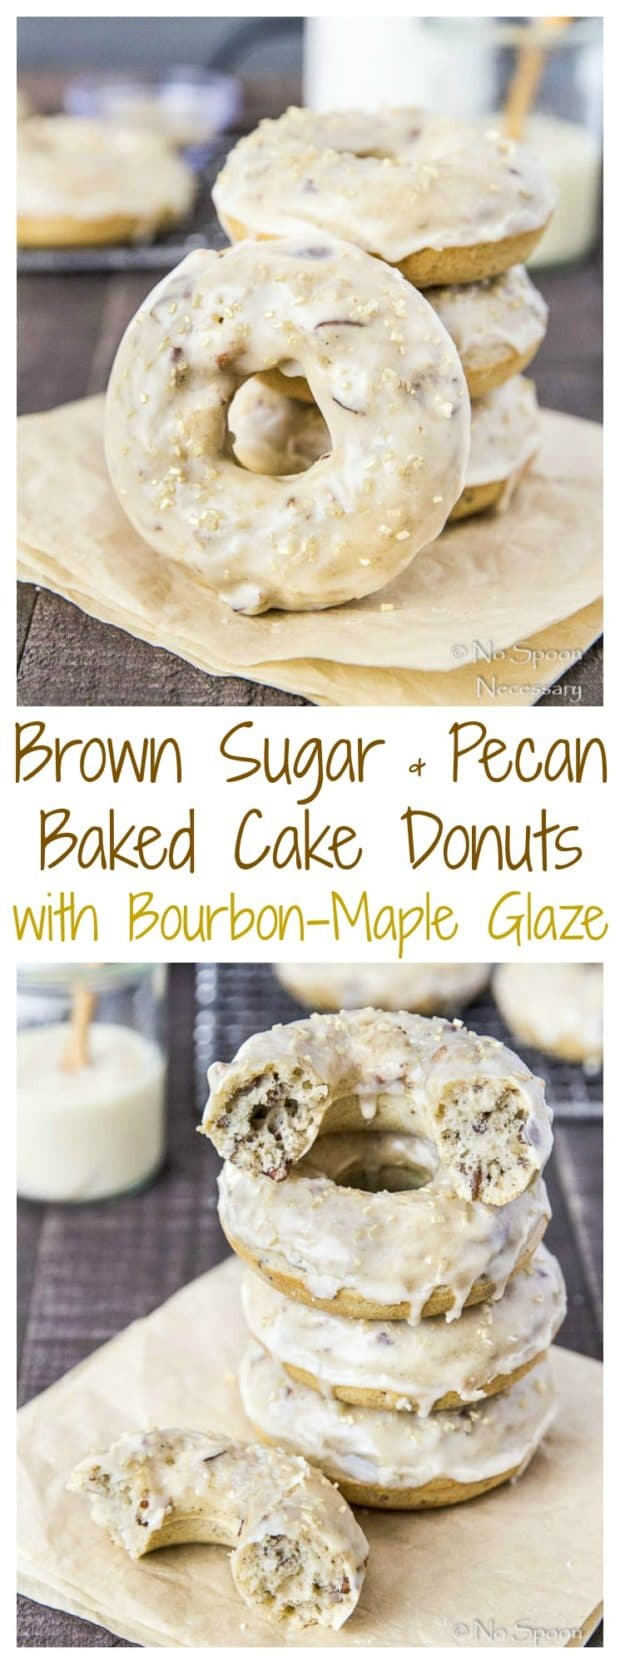 Brown Sugar & Pecan Baked Cake Donuts with Bourbon Maple Glaze-long pin4